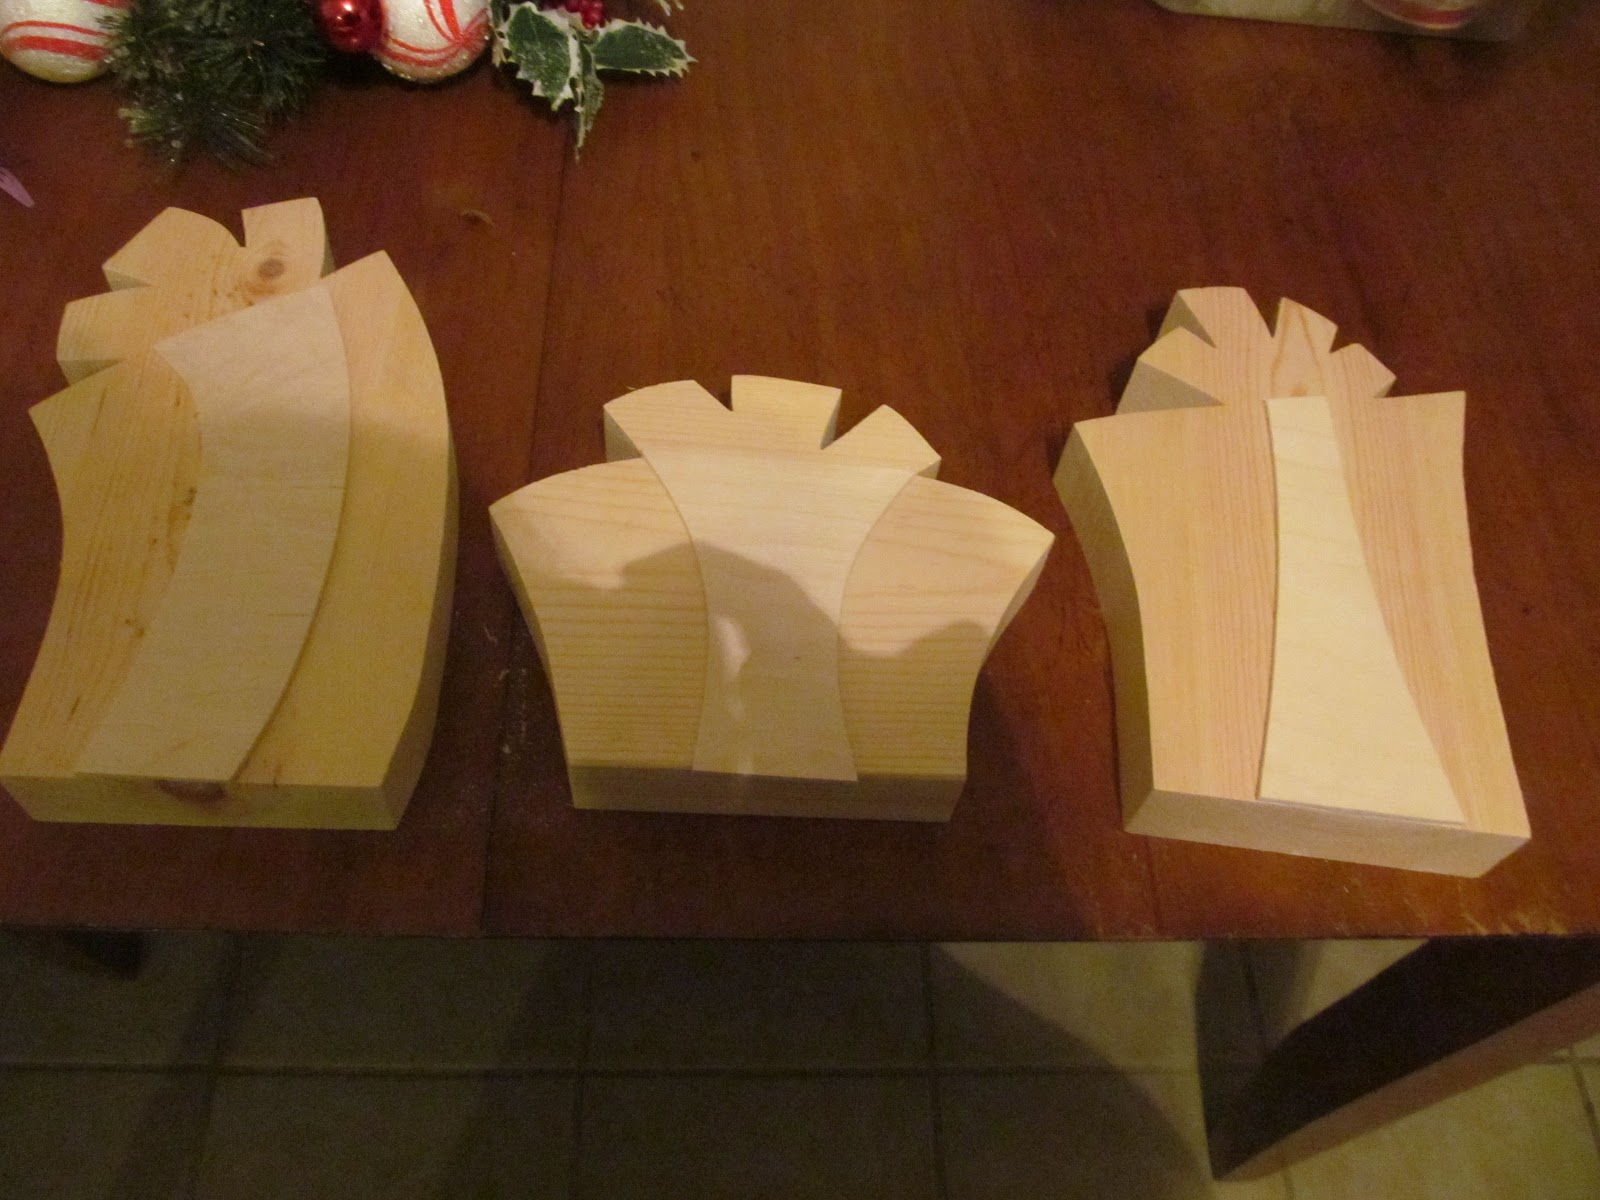 Wood Creations Christmas Present Wood Craft Tutorial By Guest